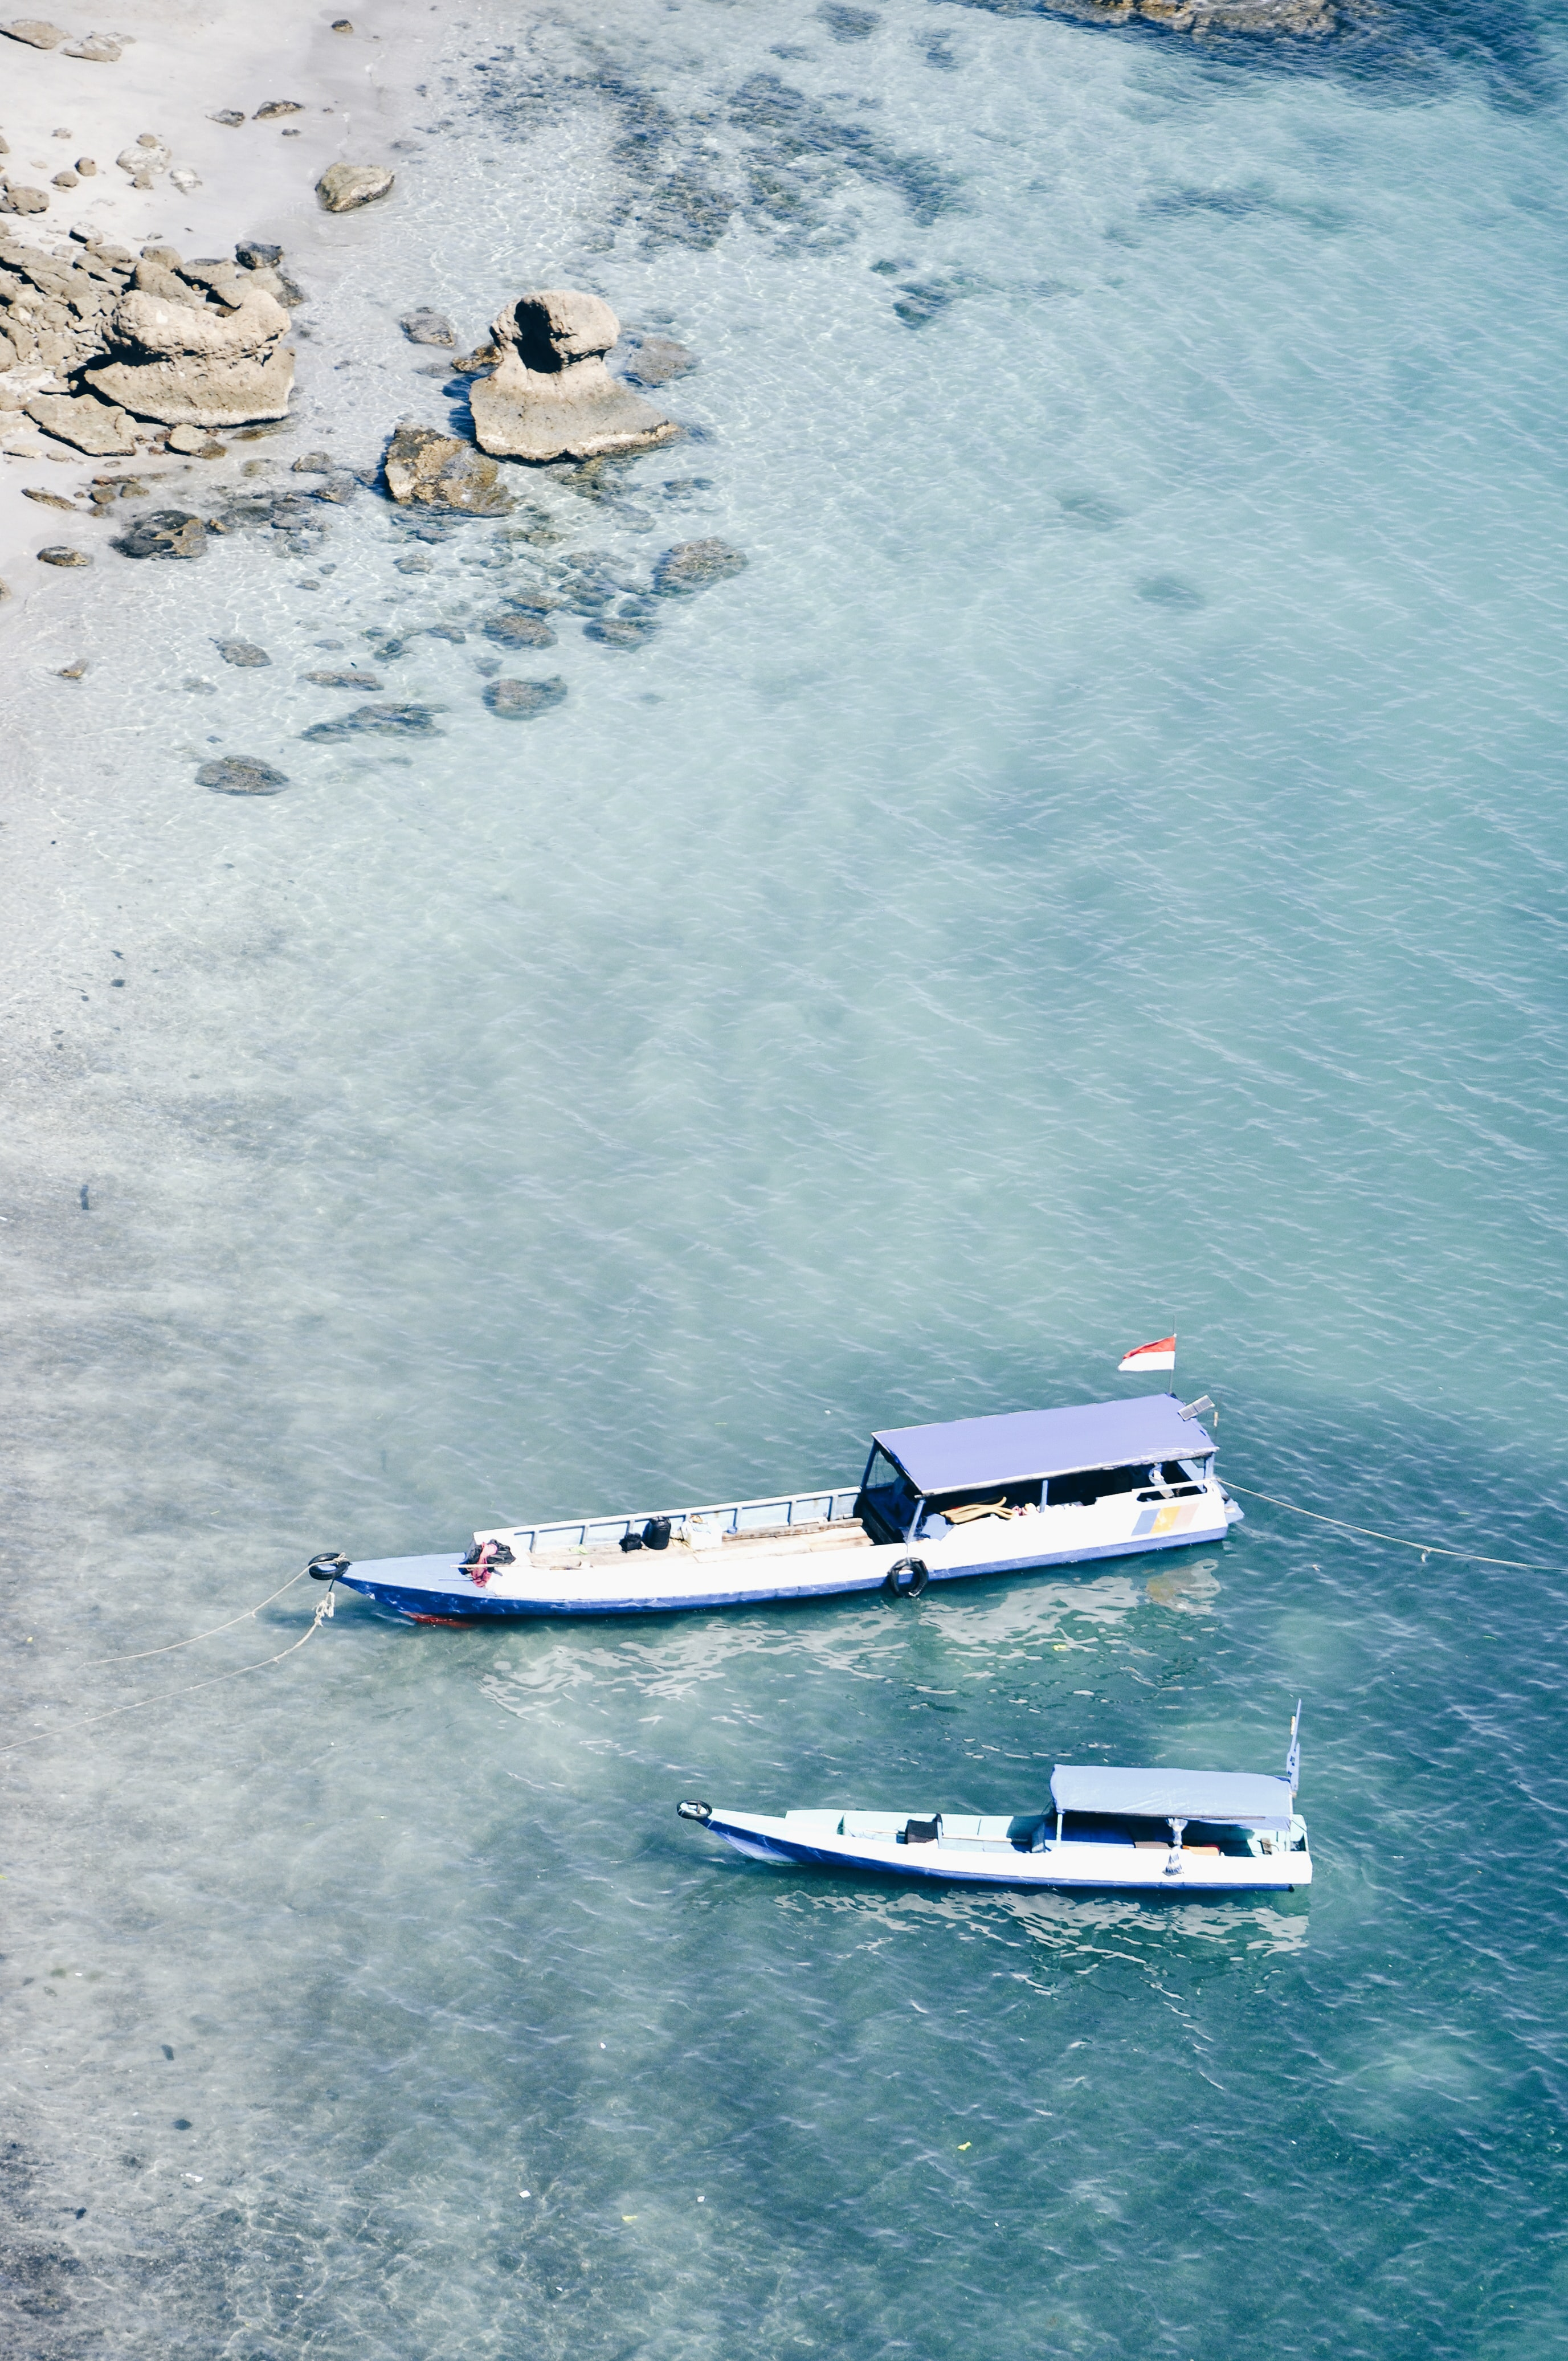 two motor boat on body of water at daytime